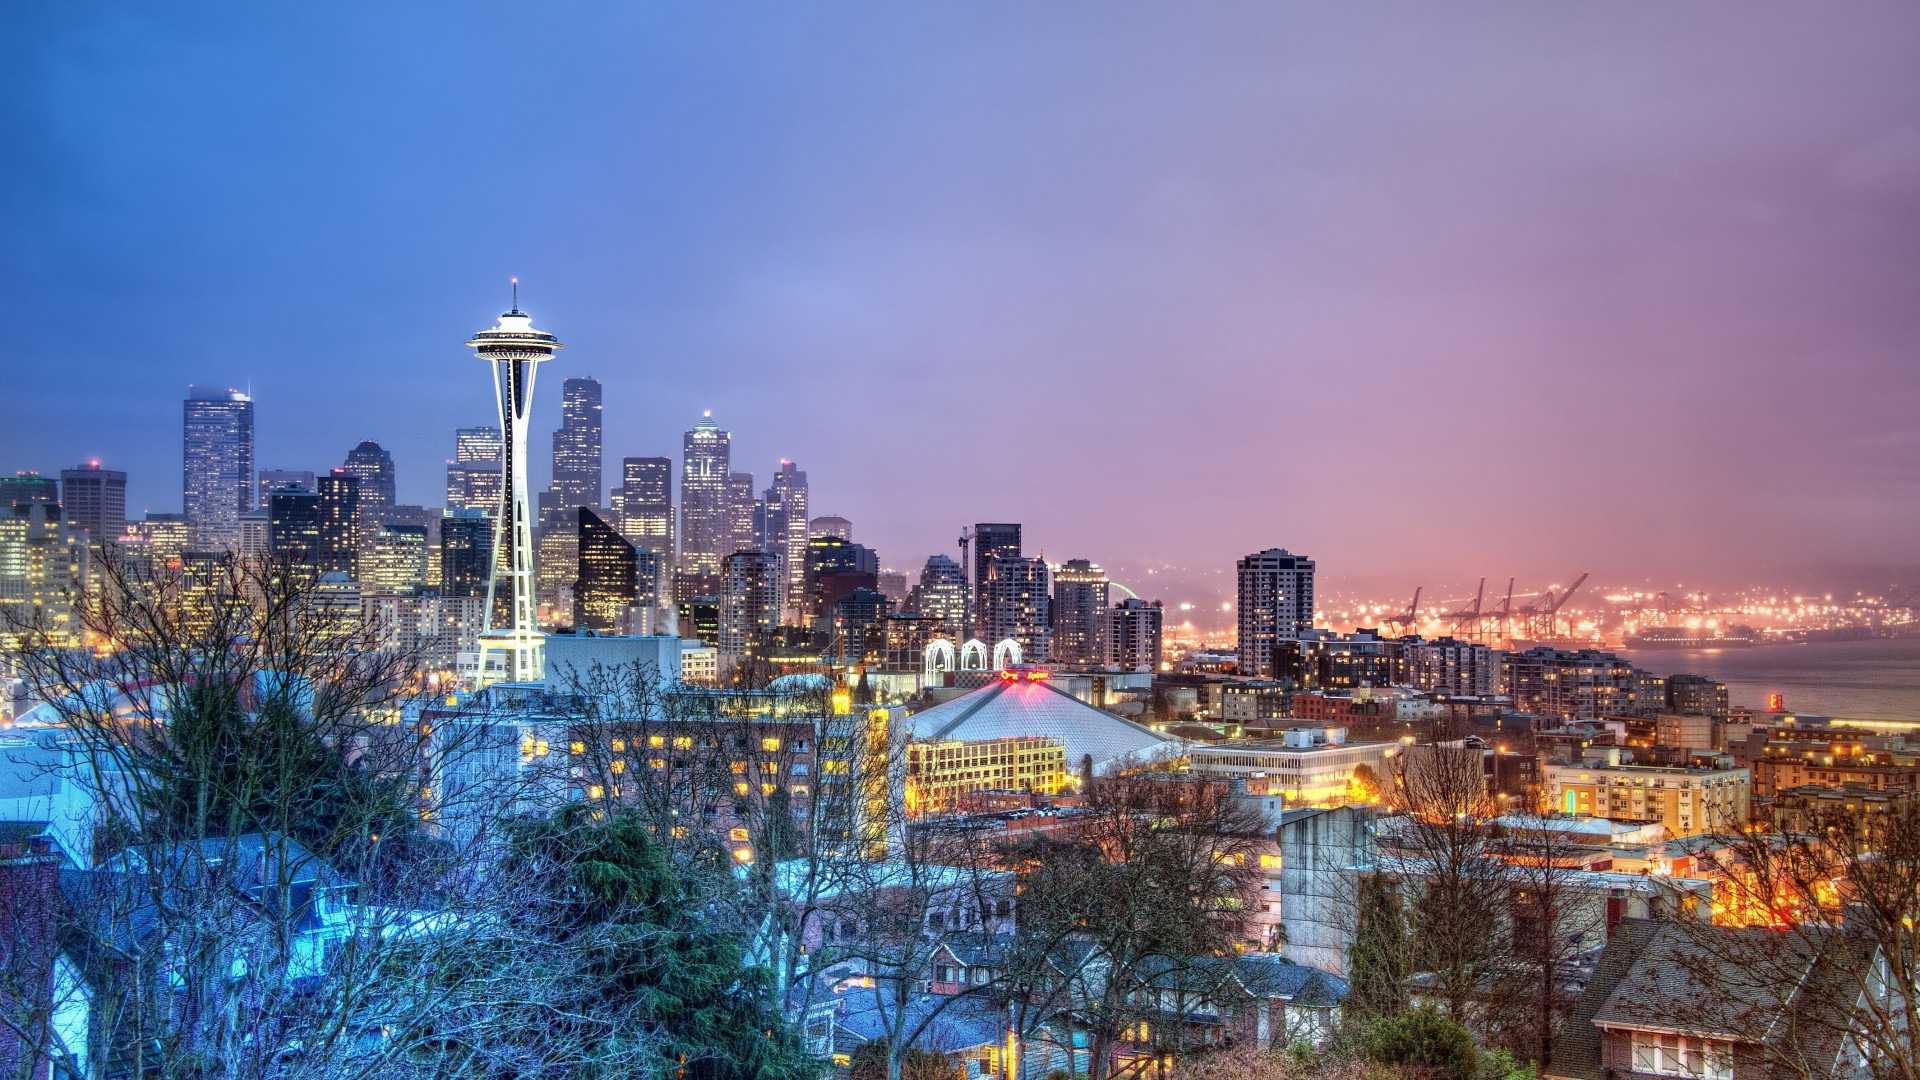 Seattle 1920x1080 Download Hd Wallpaper Wallpapertip